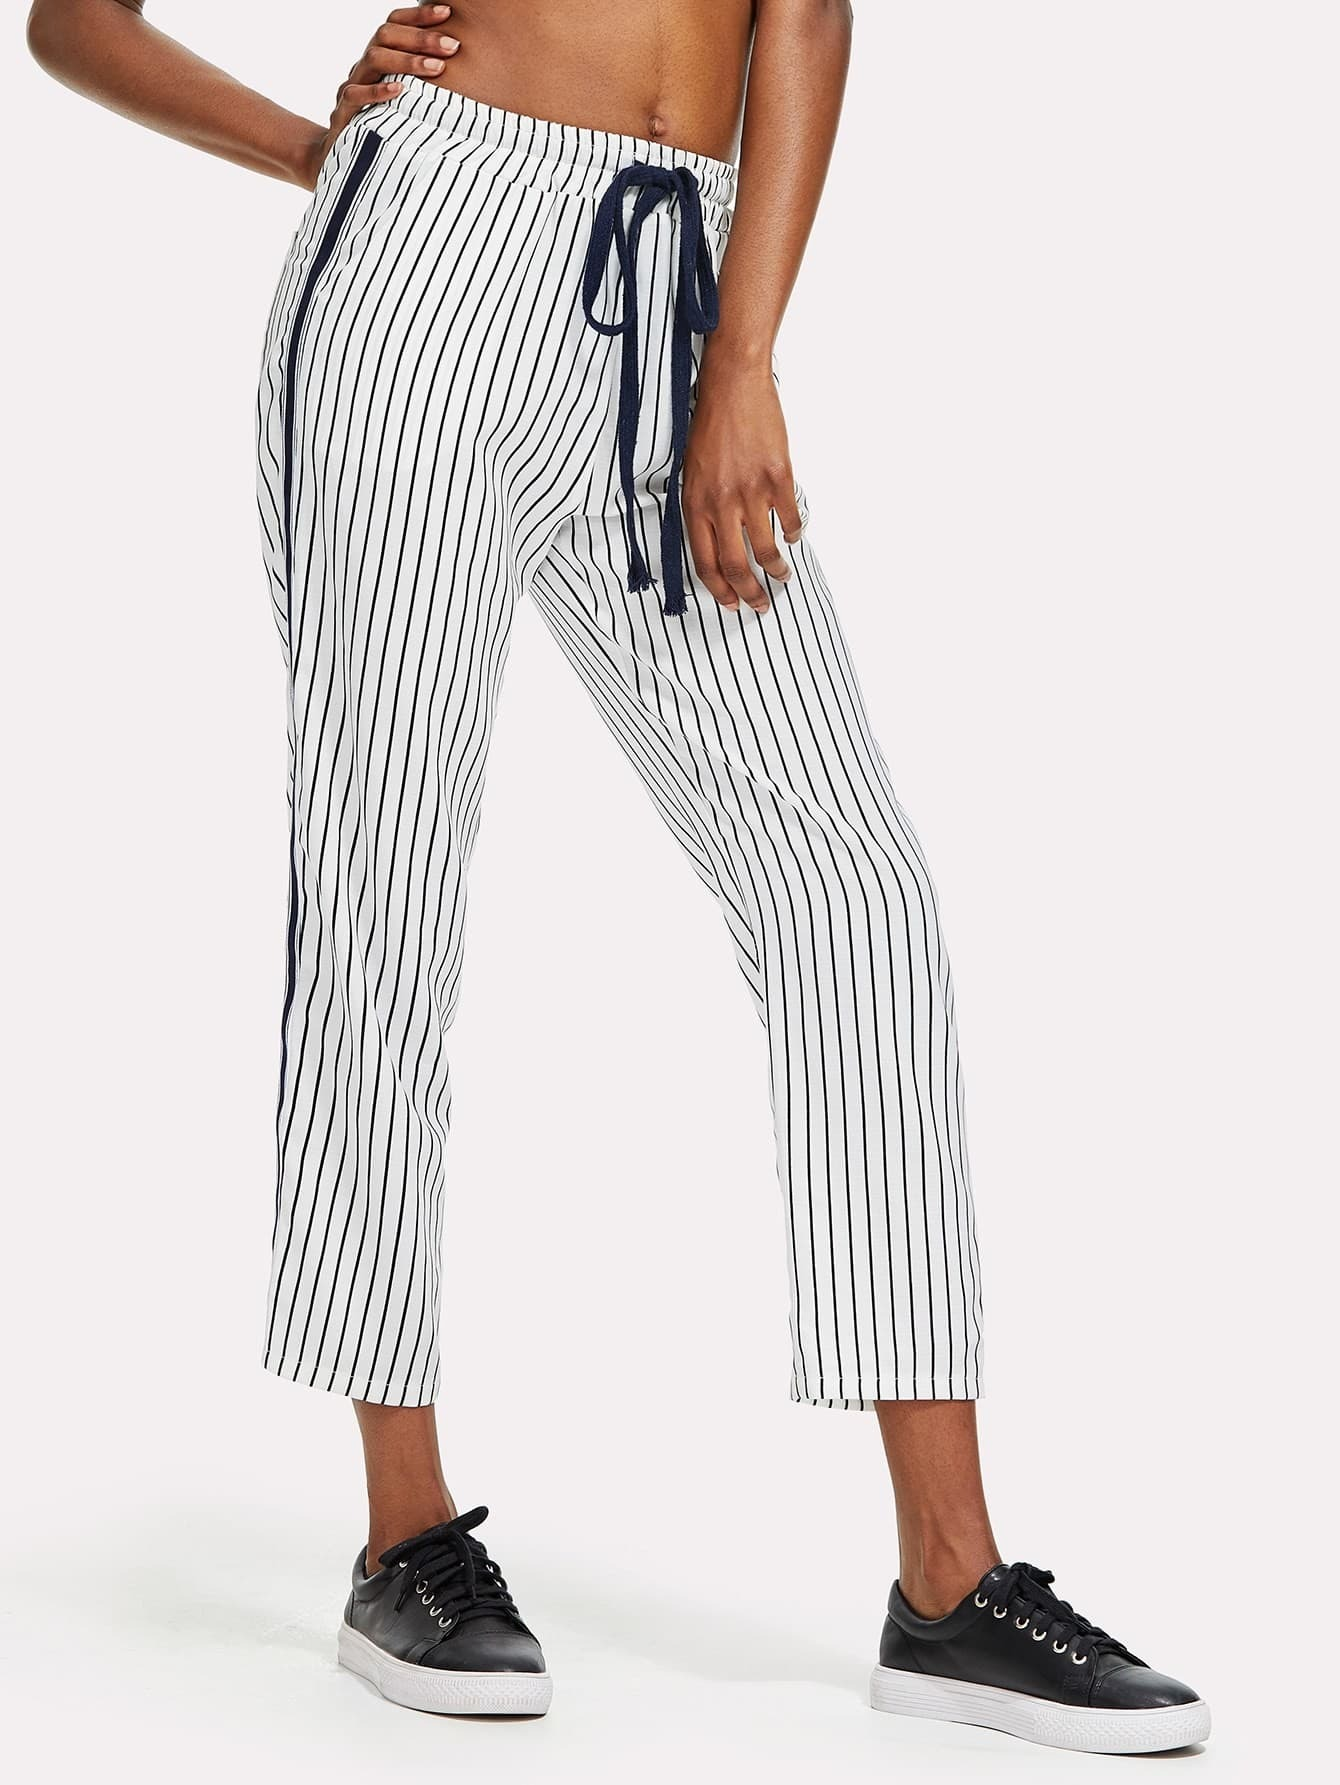 Tape Side Vertical Striped Pants striped tape side cuffed pants